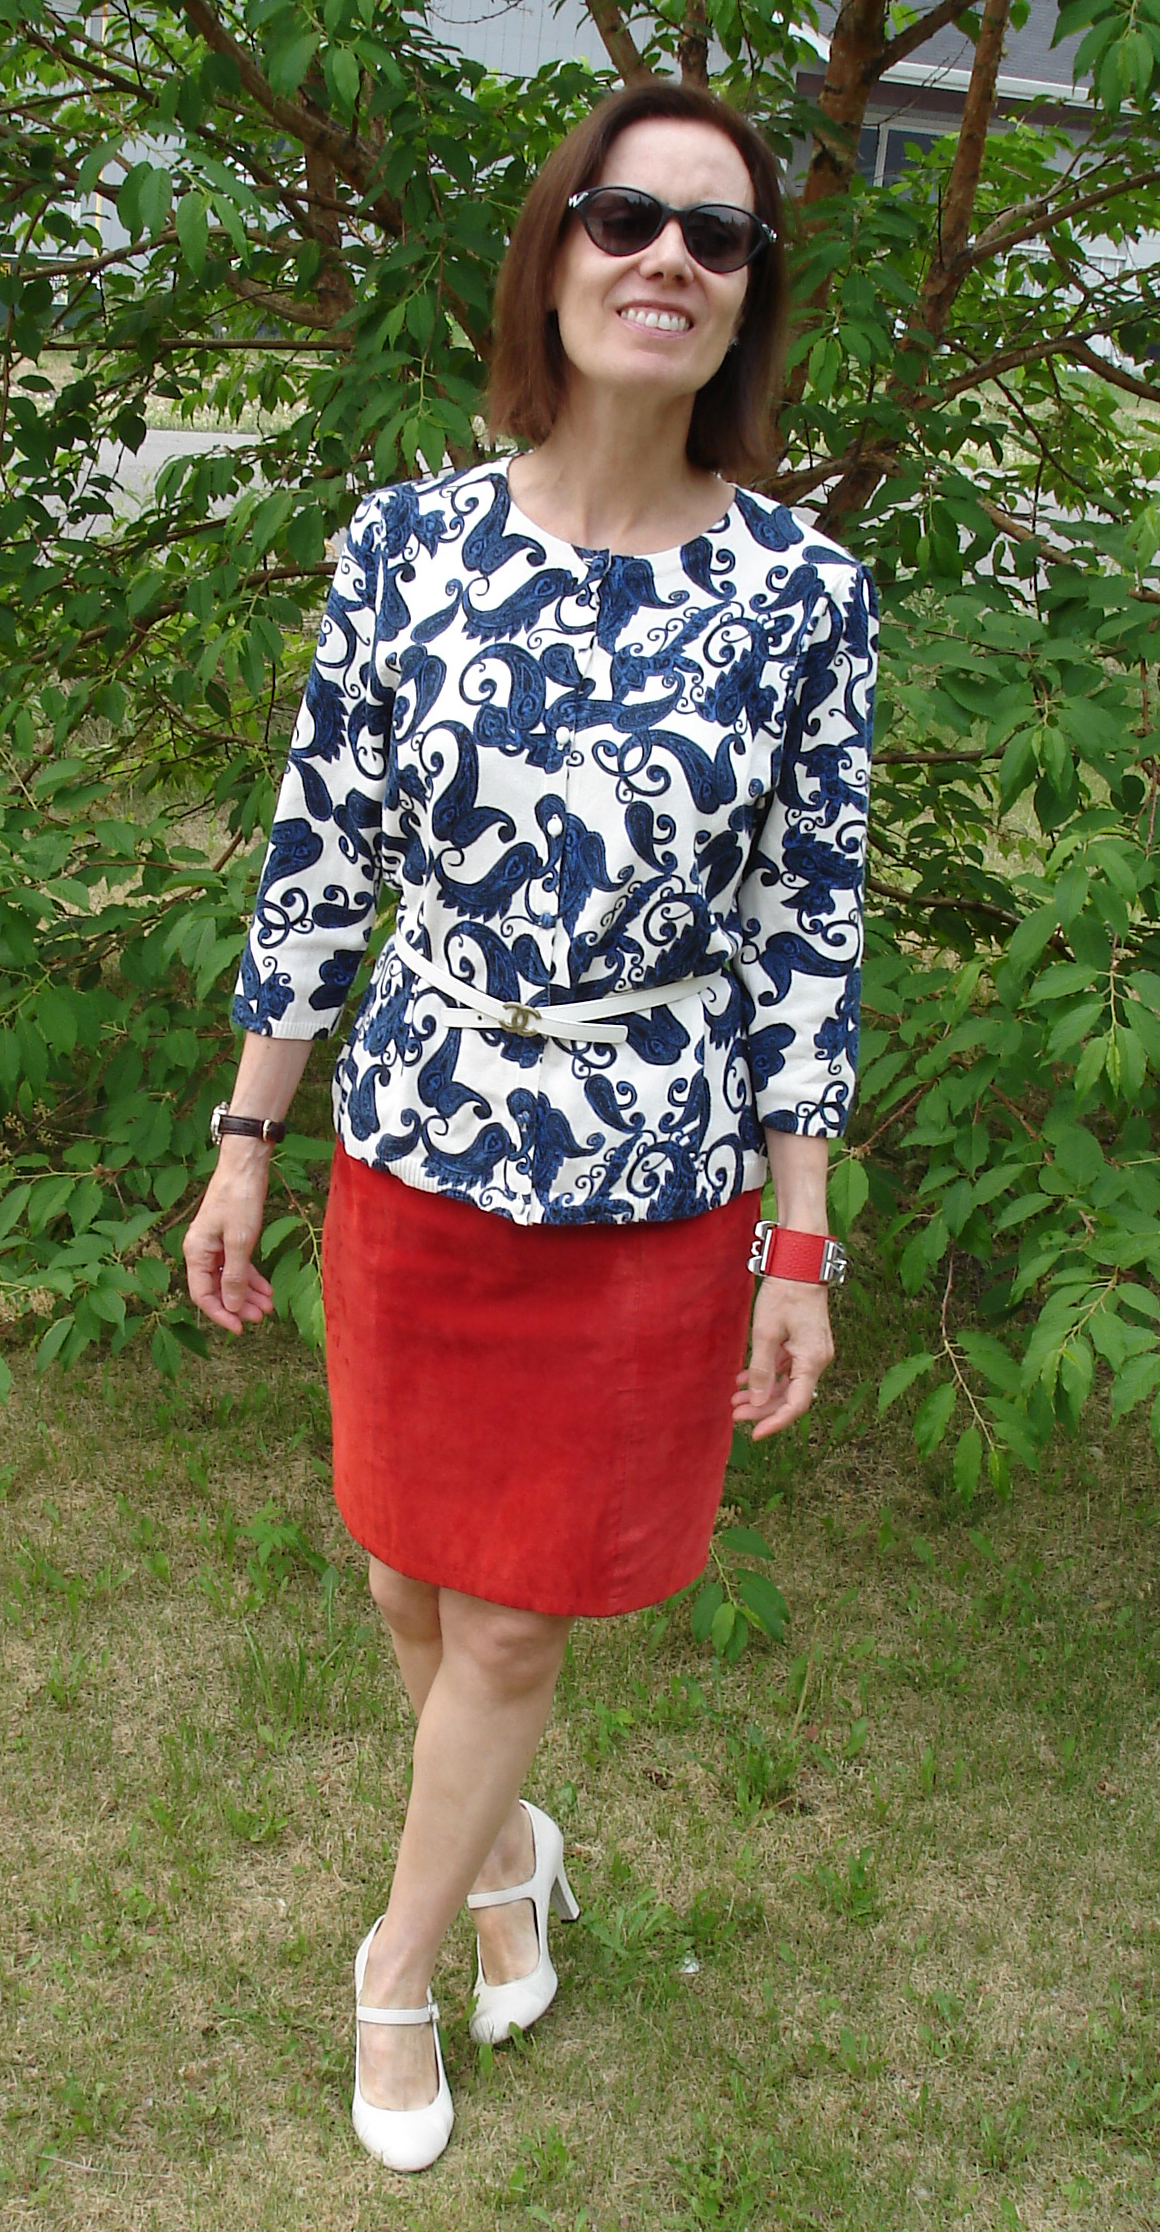 over 50 years old fashion blogger in red white and blue outfit